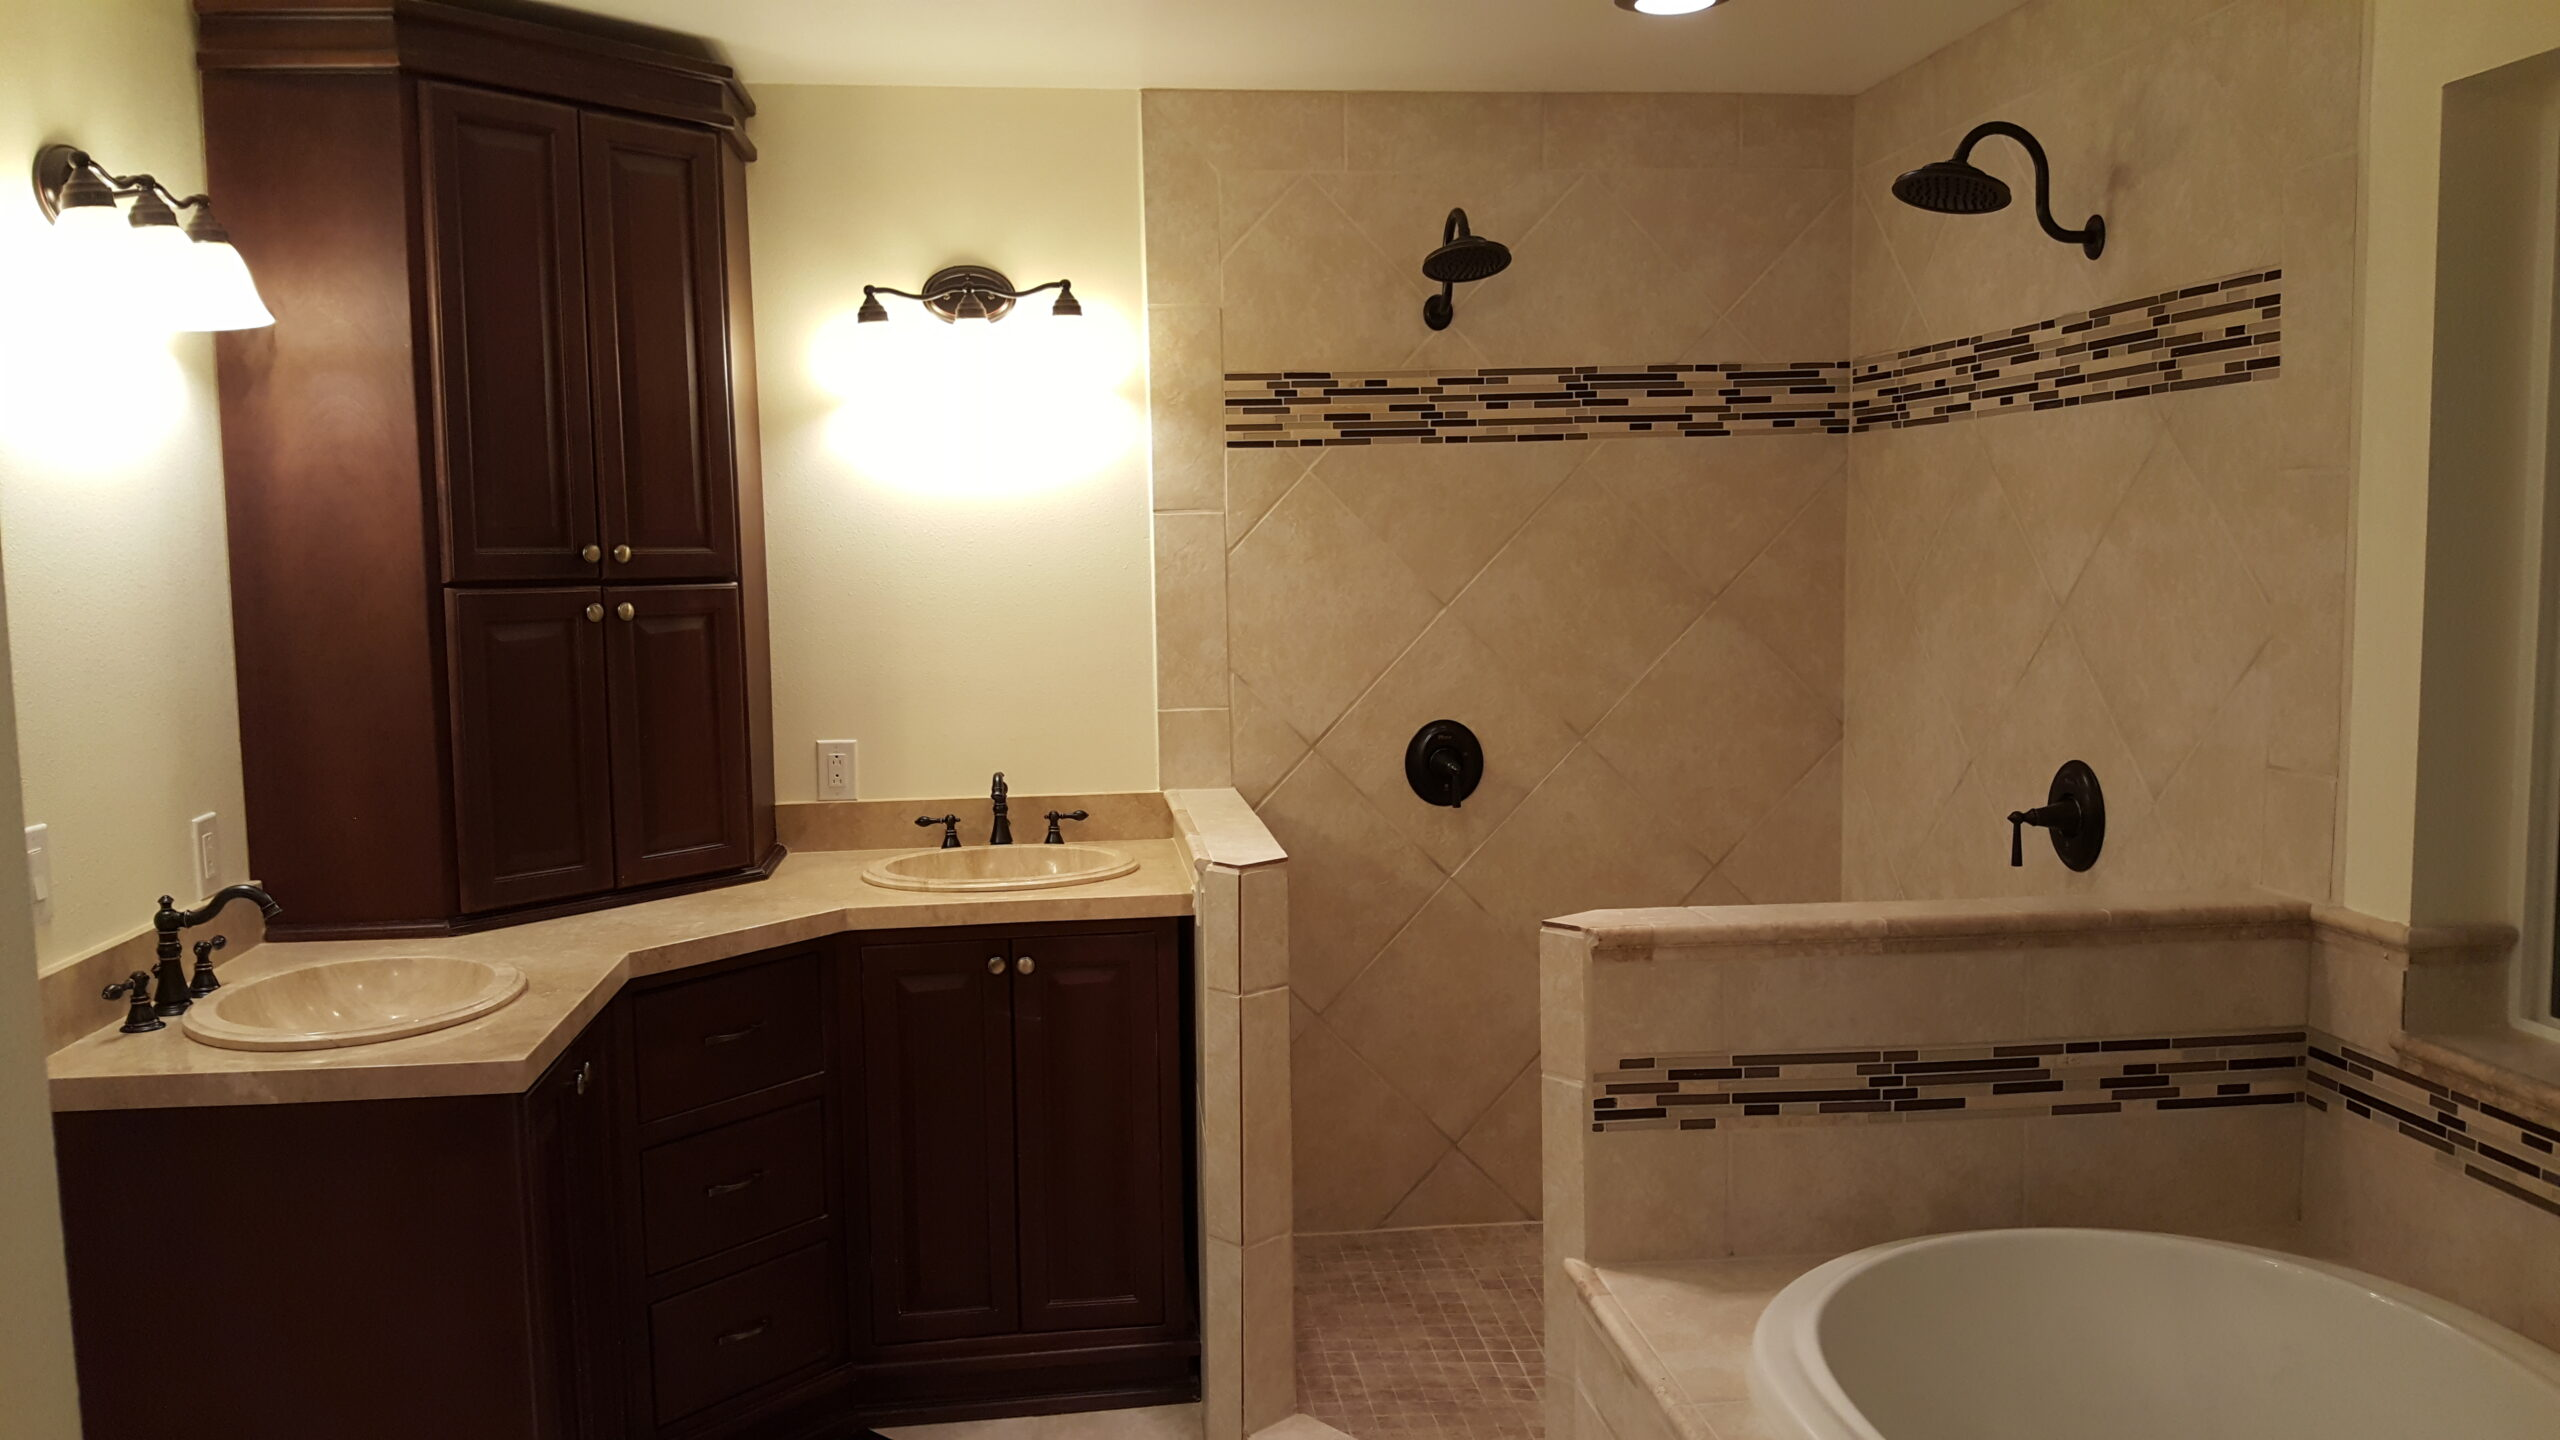 image showing bathroom remodel